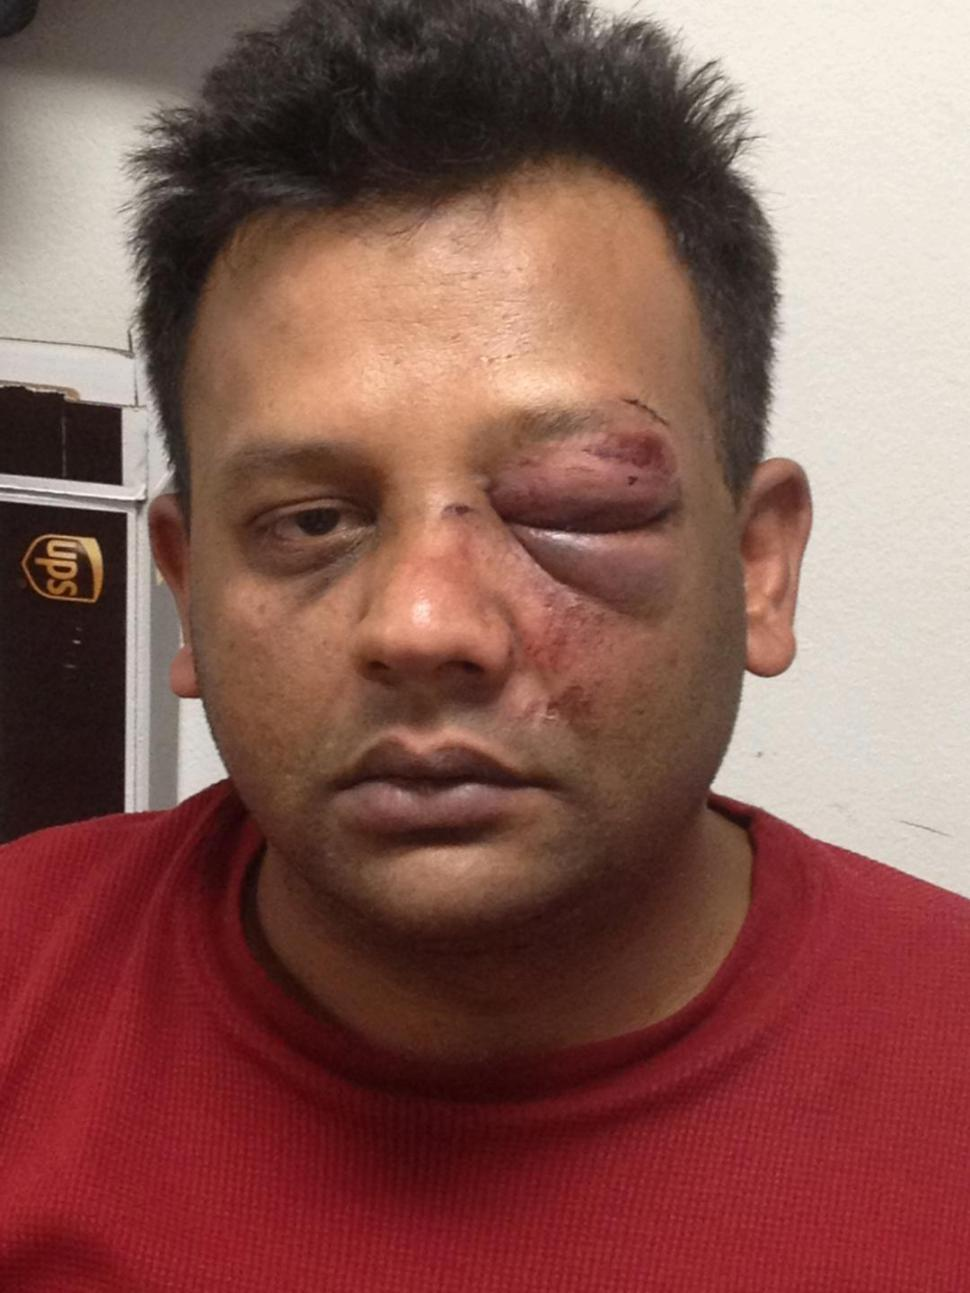 Hate-filled taxi passenger smacks driver in face with skateboard after asking his nationality